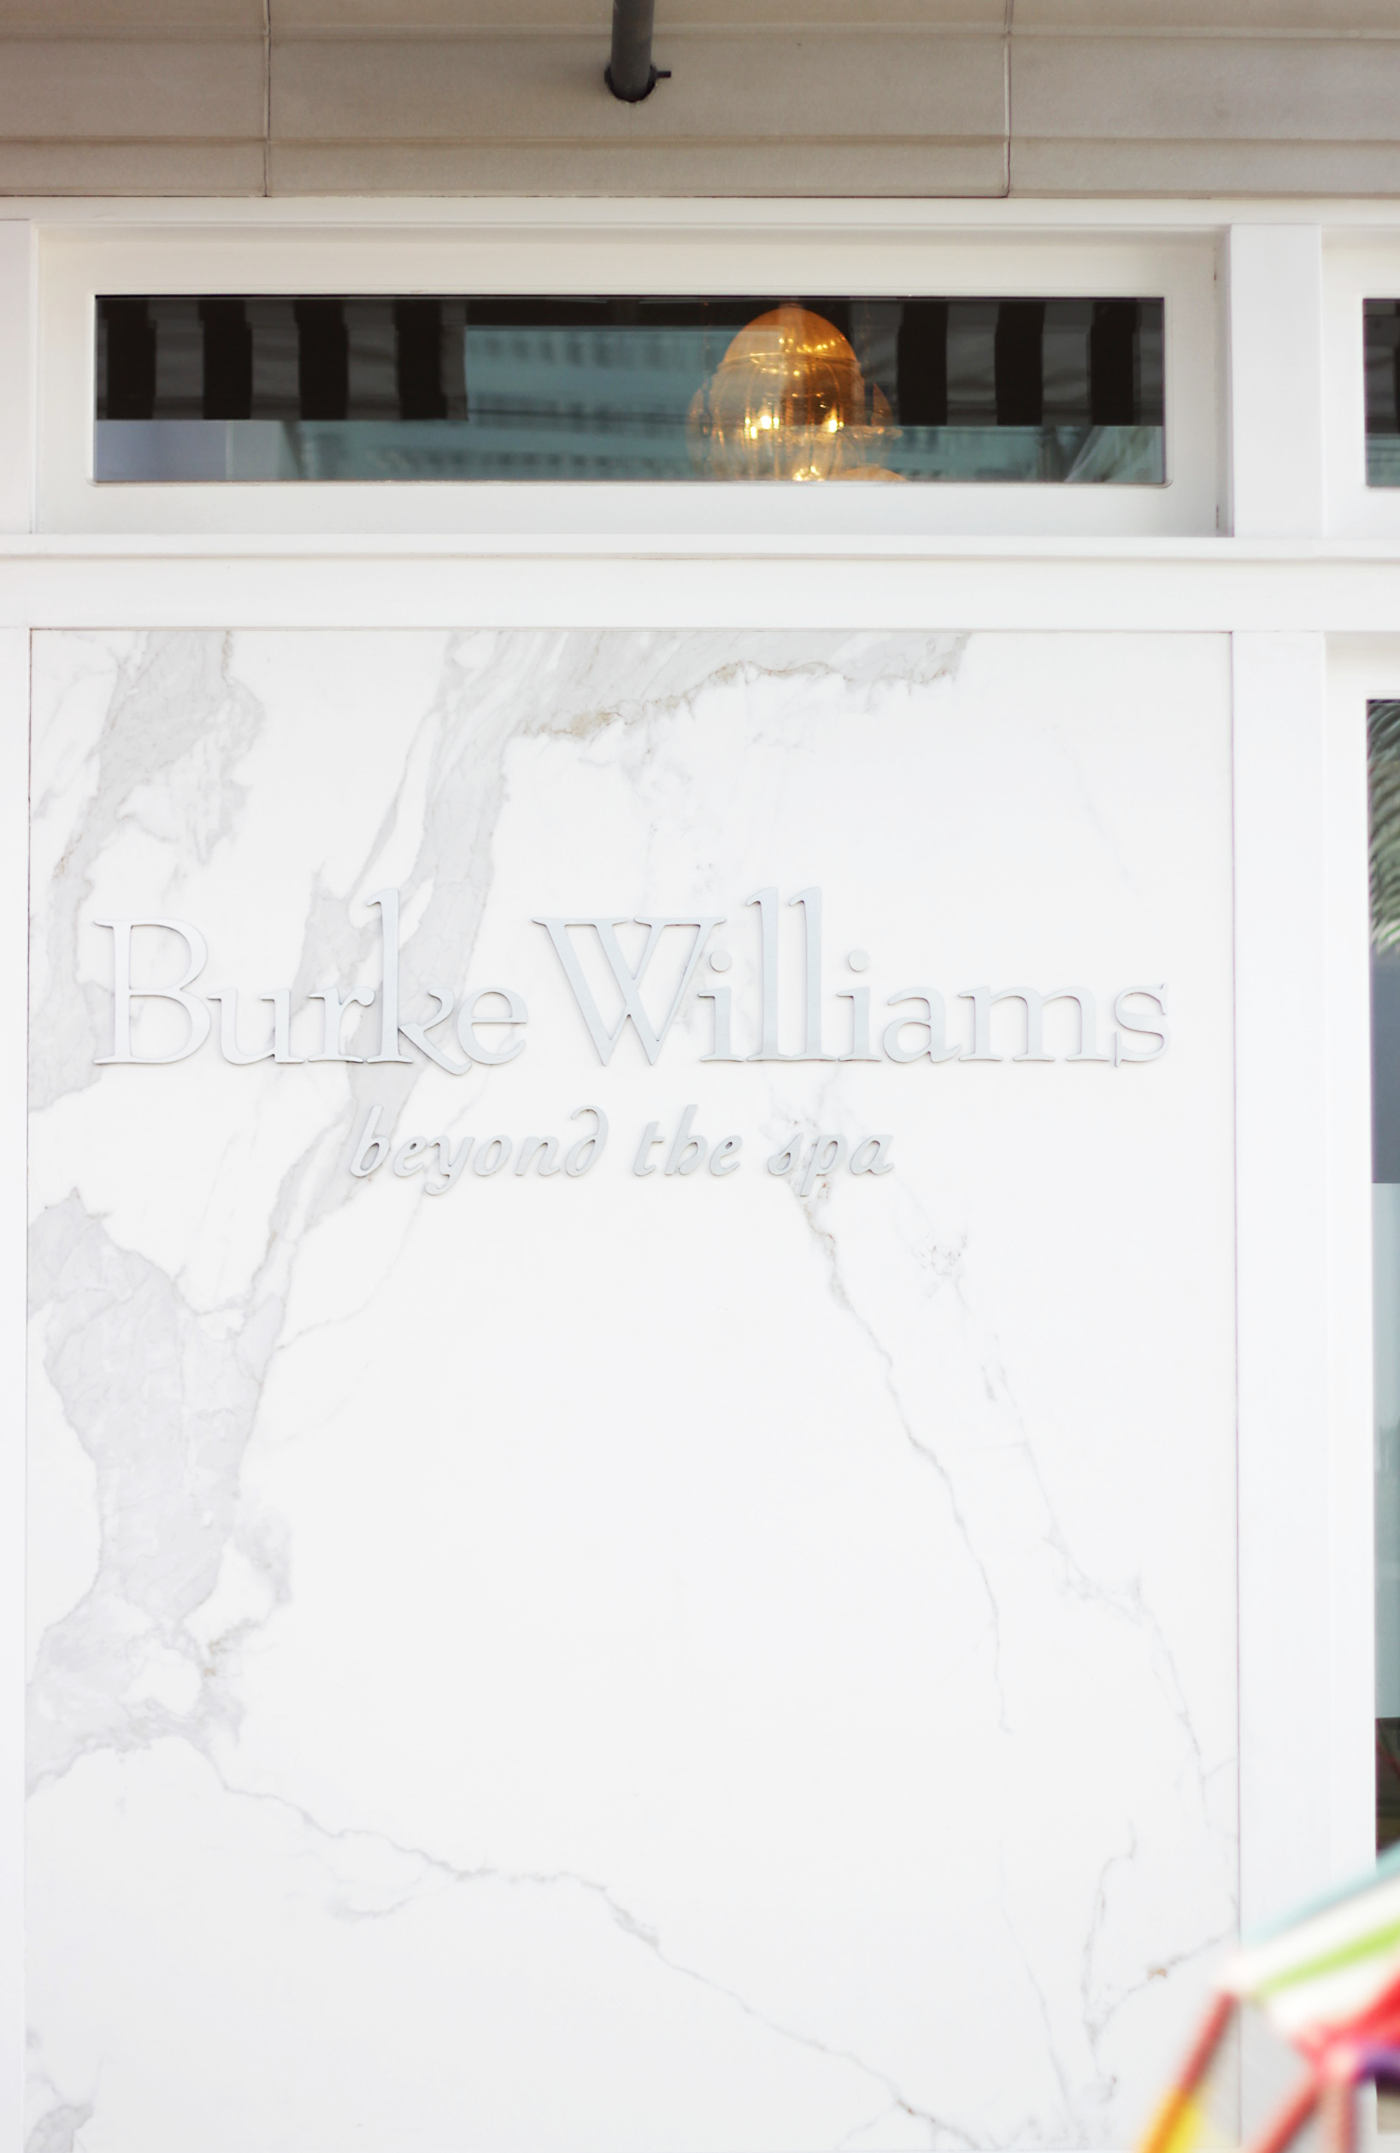 Looking to escape the hustle and bustle of daily life? Here are 5 reasons you NEED to visit a Burke Williams Spas ASAP!